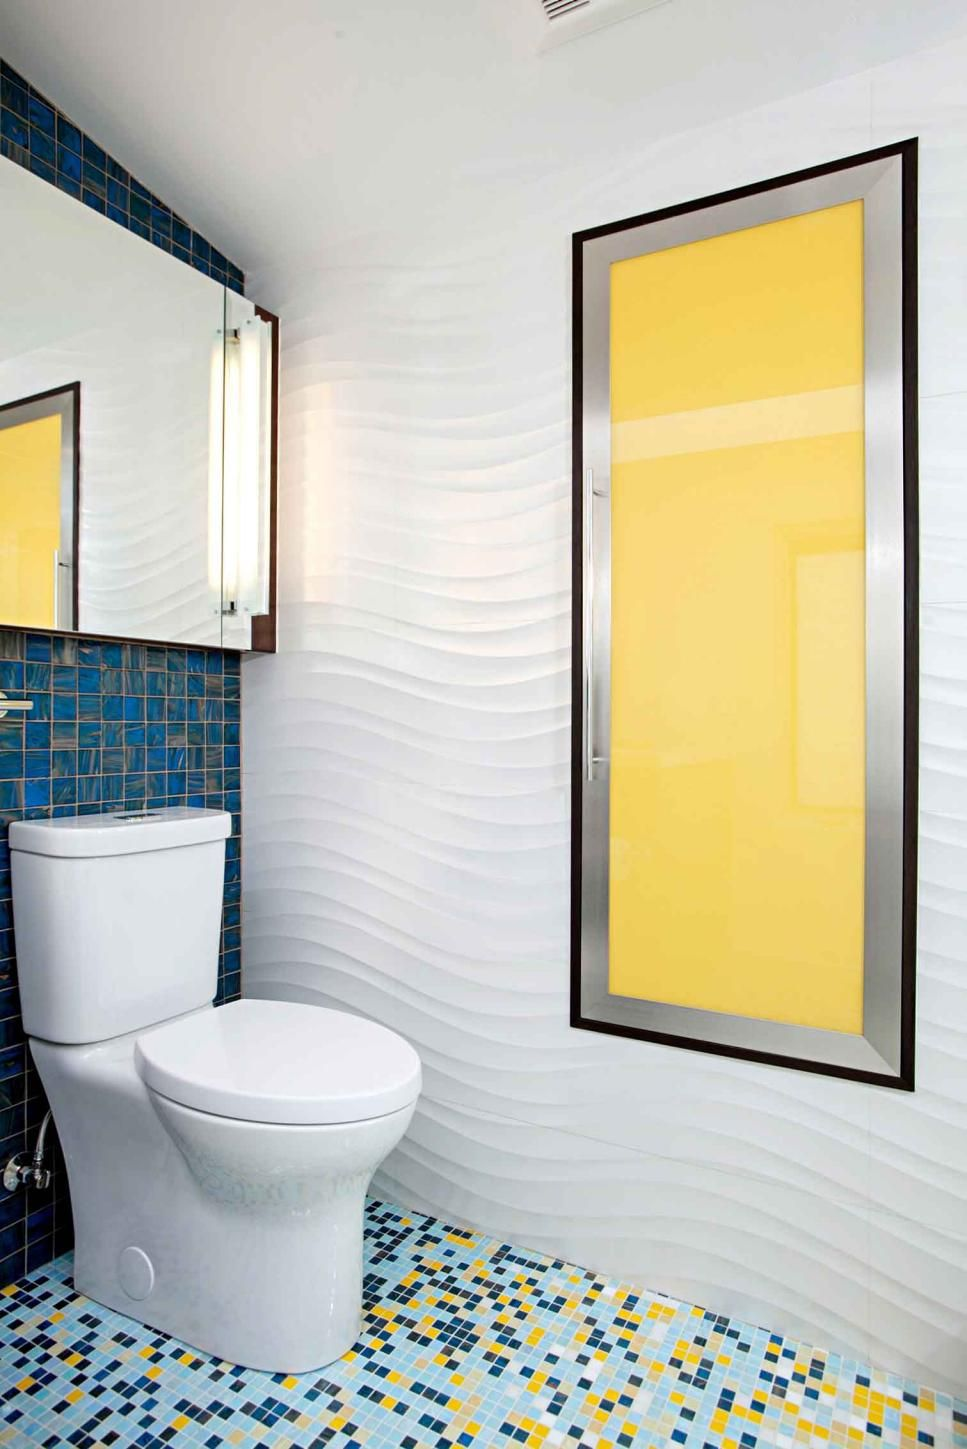 Colorful Contemporary Bathroom With Textured Wavy Walls Small Blue And Yellow Tile Floor And Yellow Accent Yellow Bathrooms Yellow Bathroom Tiles Yellow Tile